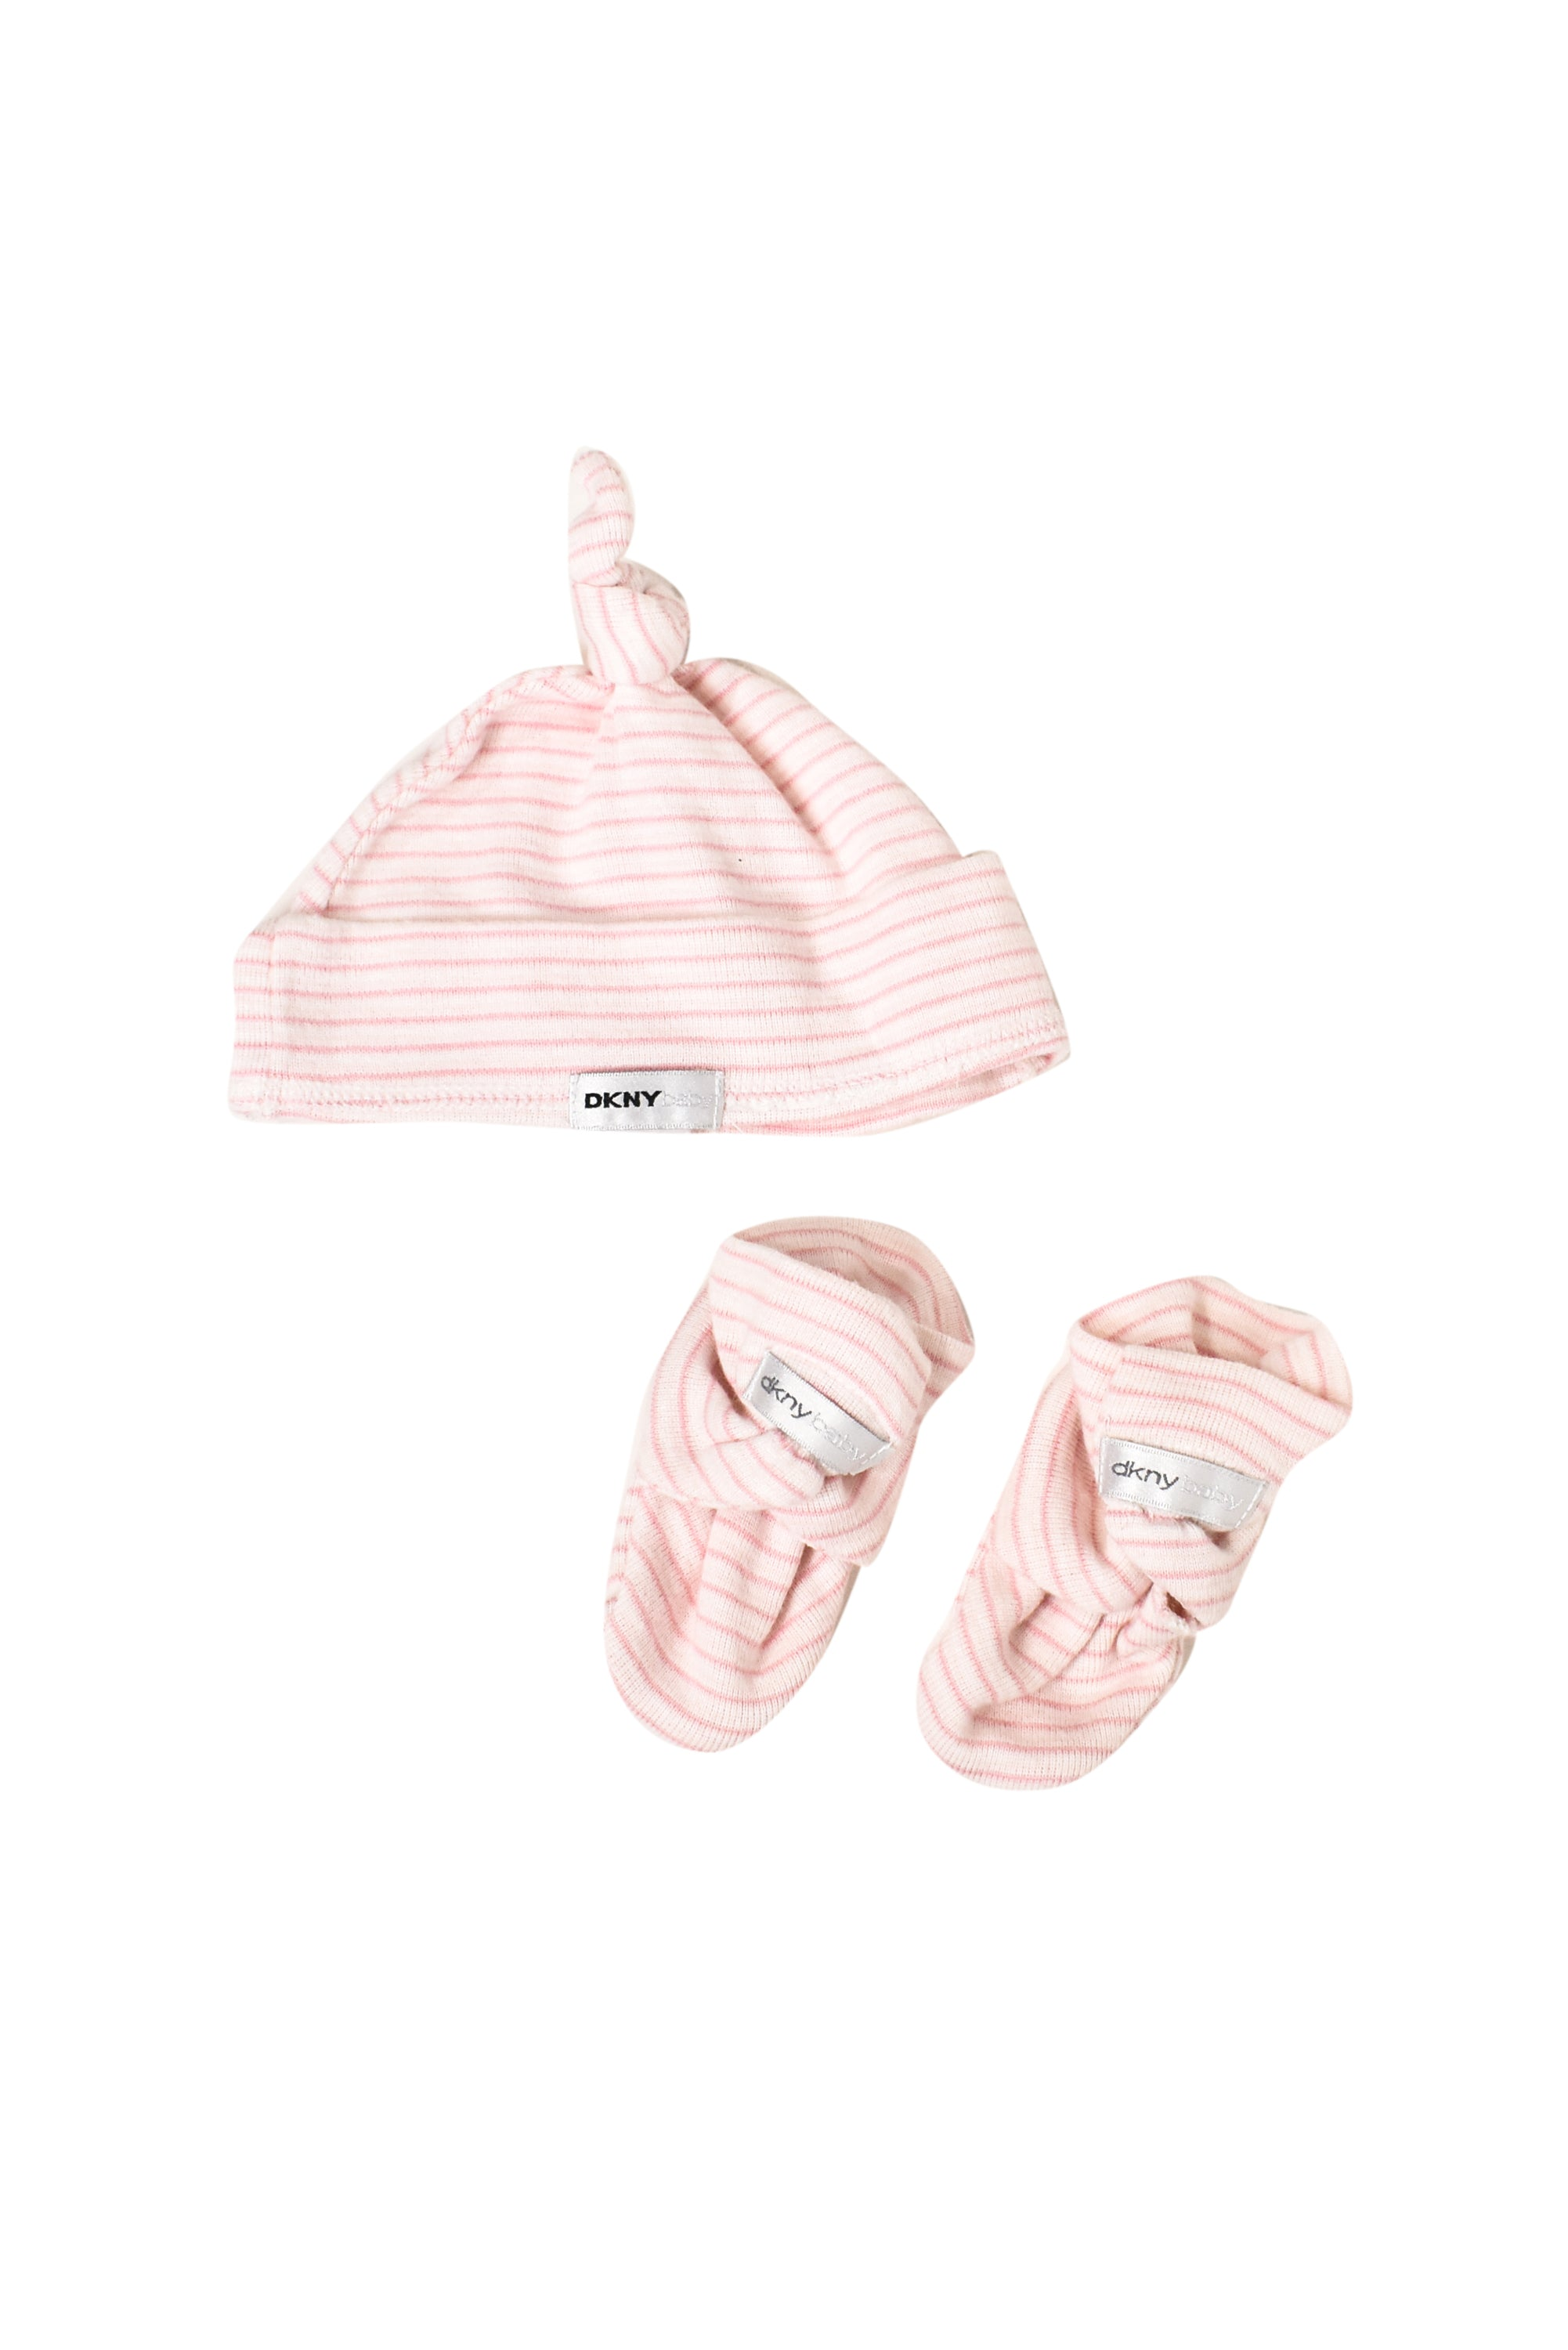 10023584 DKNY Baby~Hat and Booties Set 0-3M at Retykle